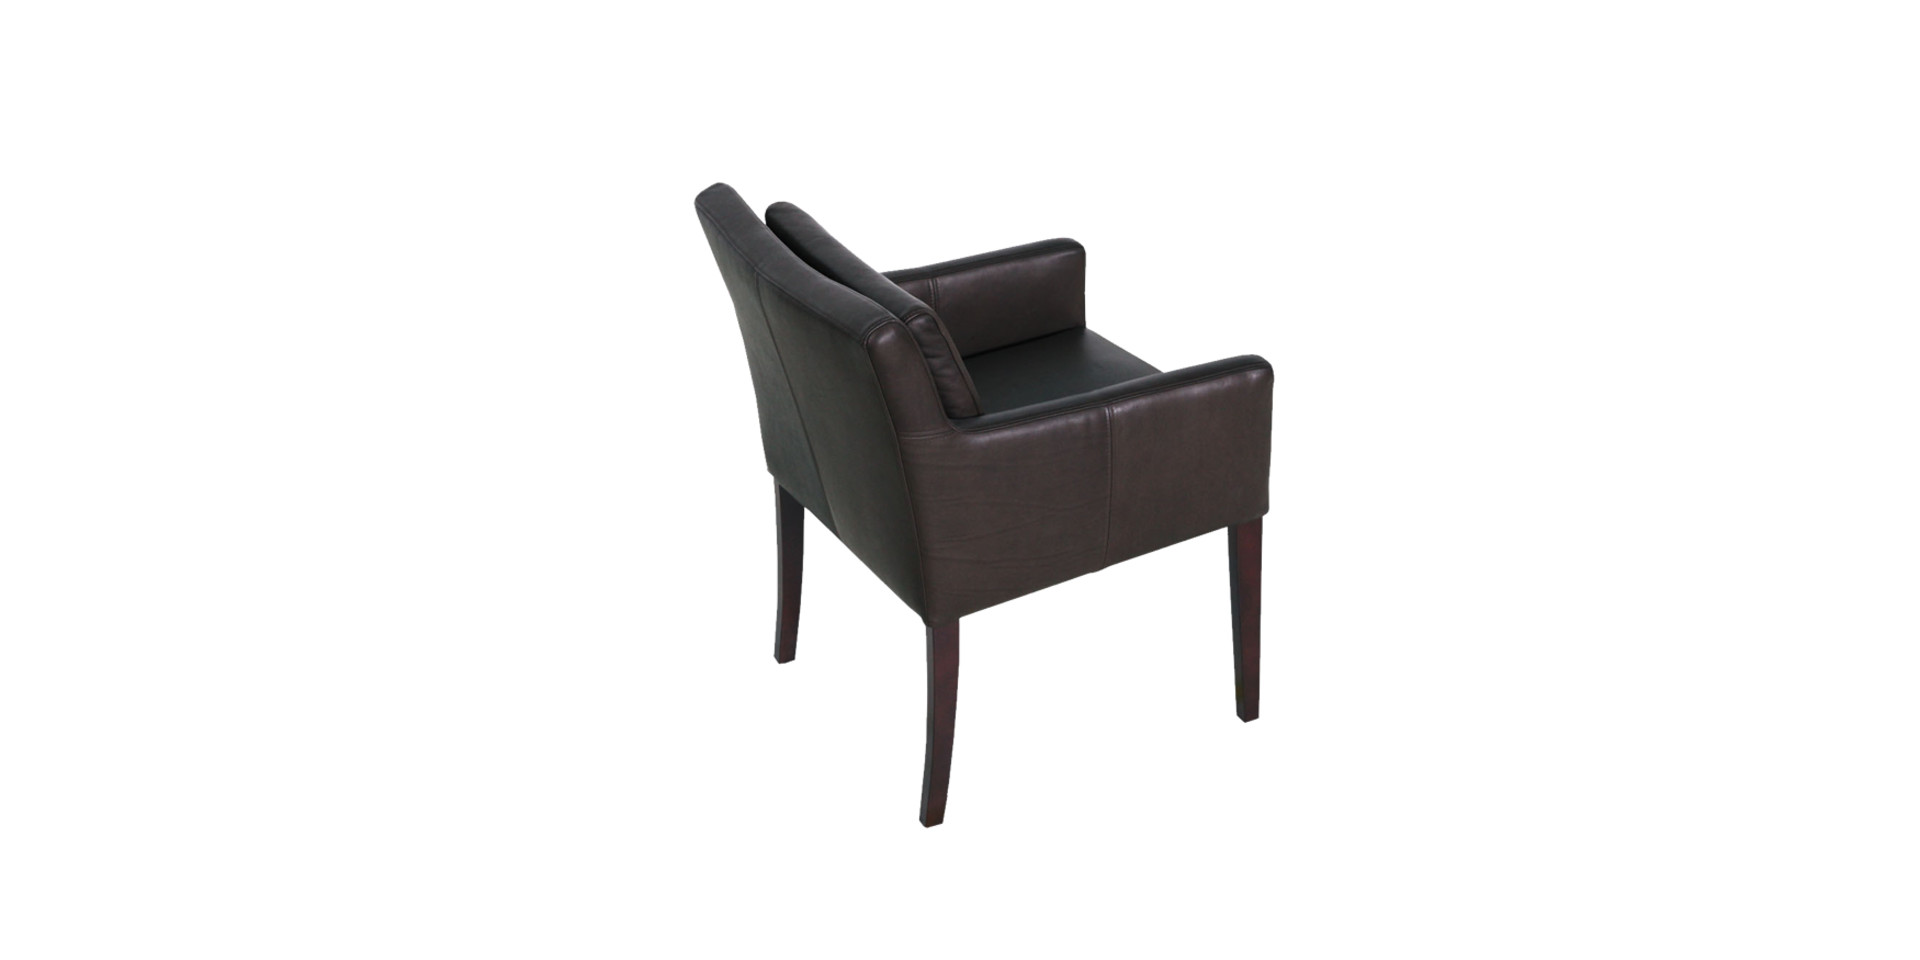 sits-venezia-fauteuil-chair_aniline_dark_brown_4